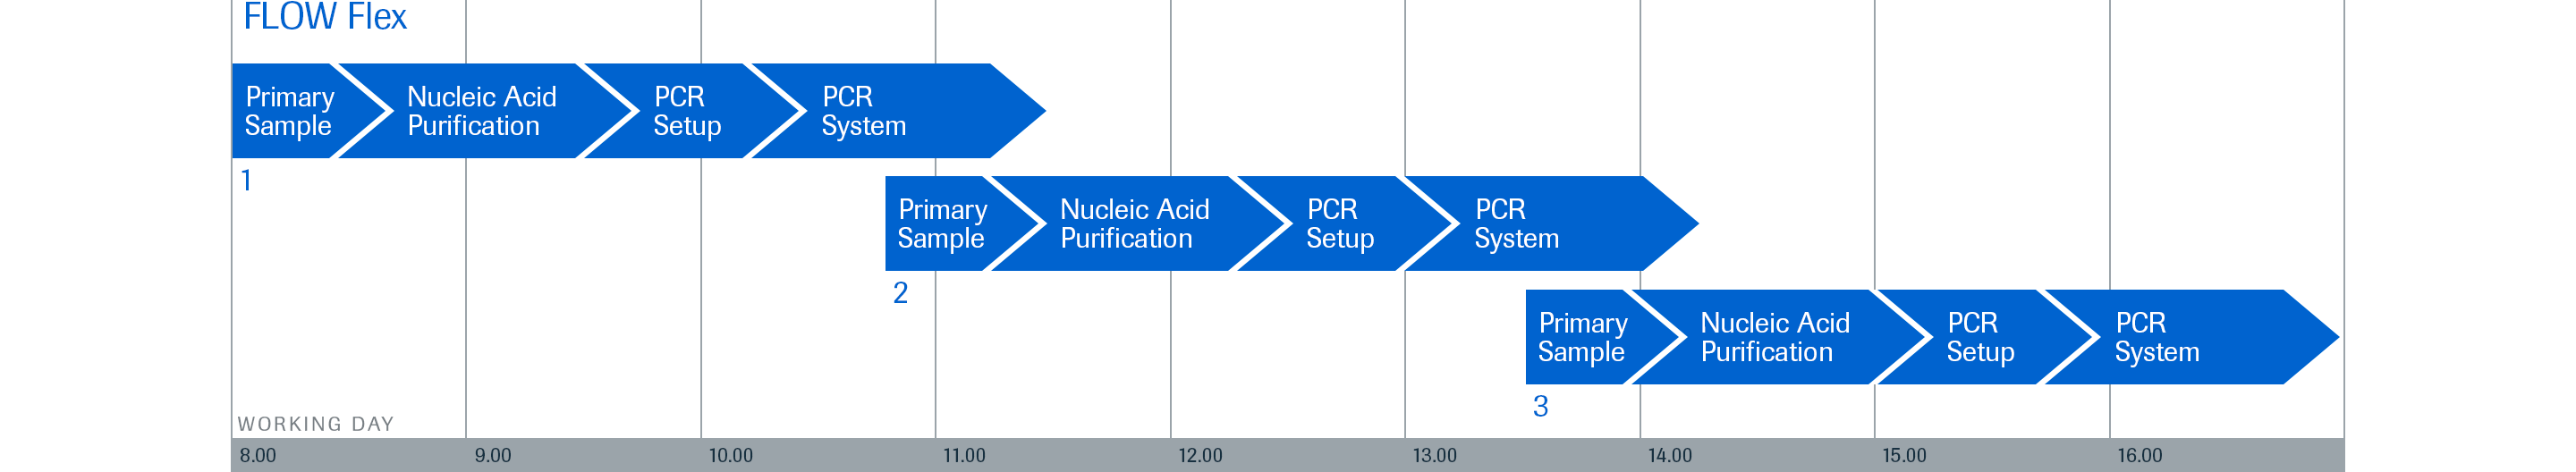 RMD_NAP qPCR_FLOW Flex Staggered Runs Timeline